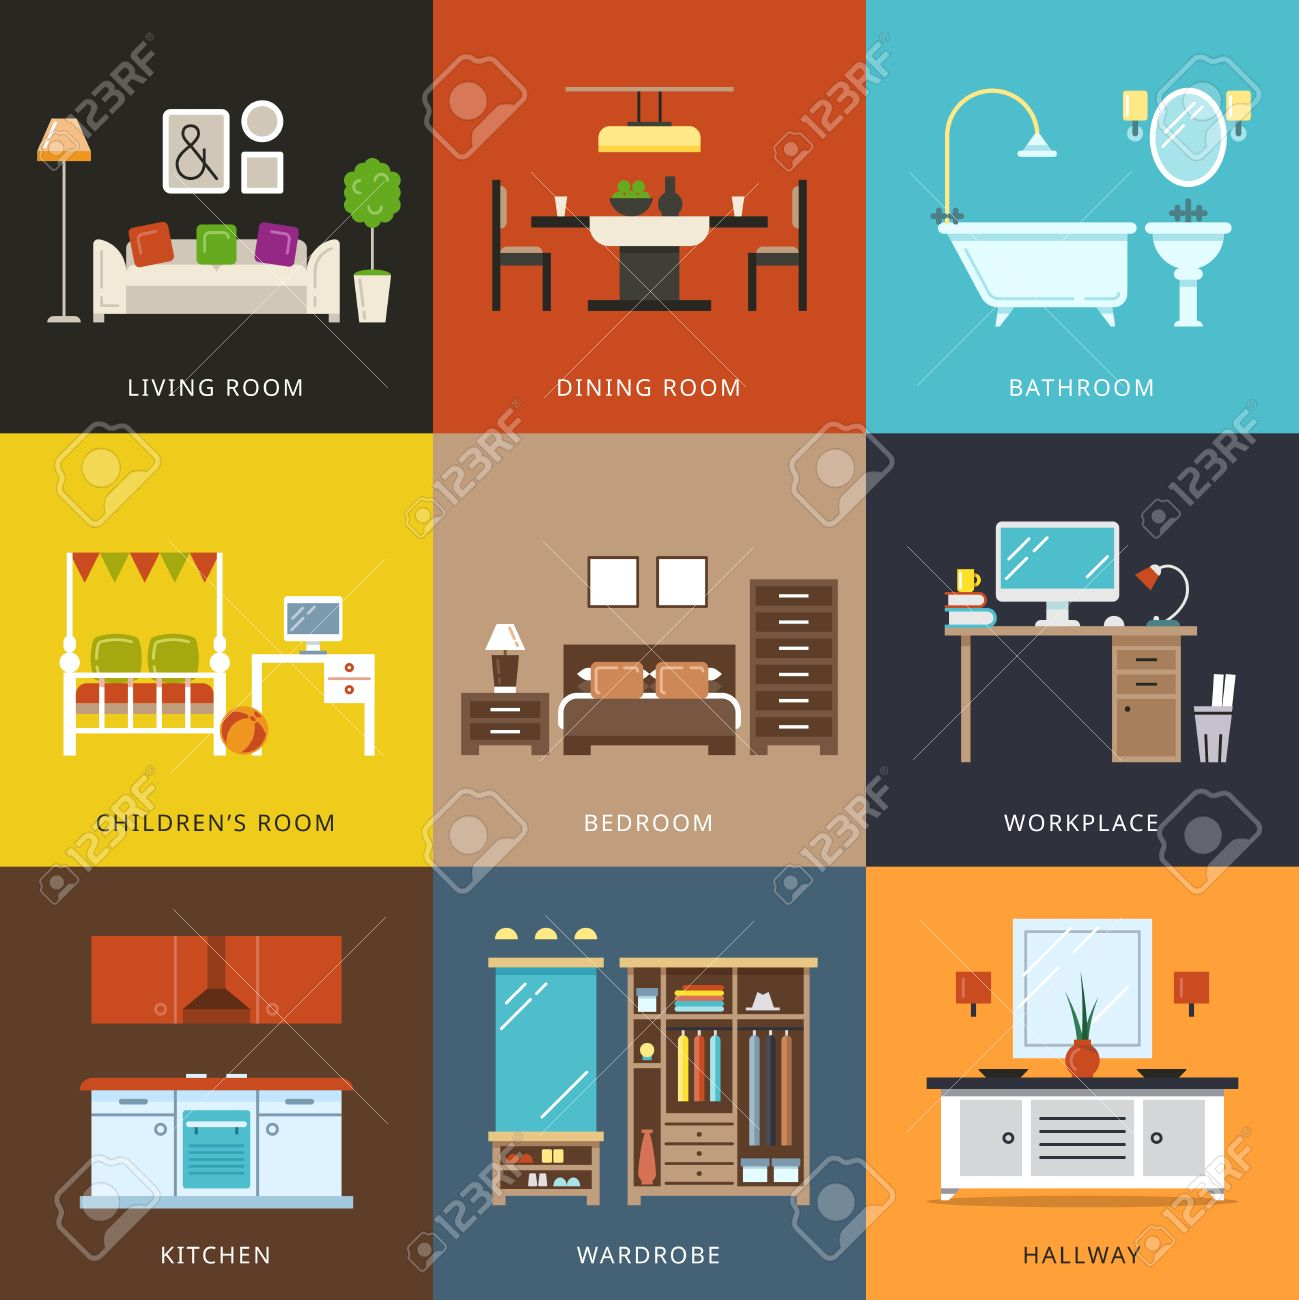 All rooms in the house rooms of homes vector art image illustration - Vector Illustration In Flat Style Interior Of Different Rooms Types Furniture For Home Hallway And Wardrobe Workplace And